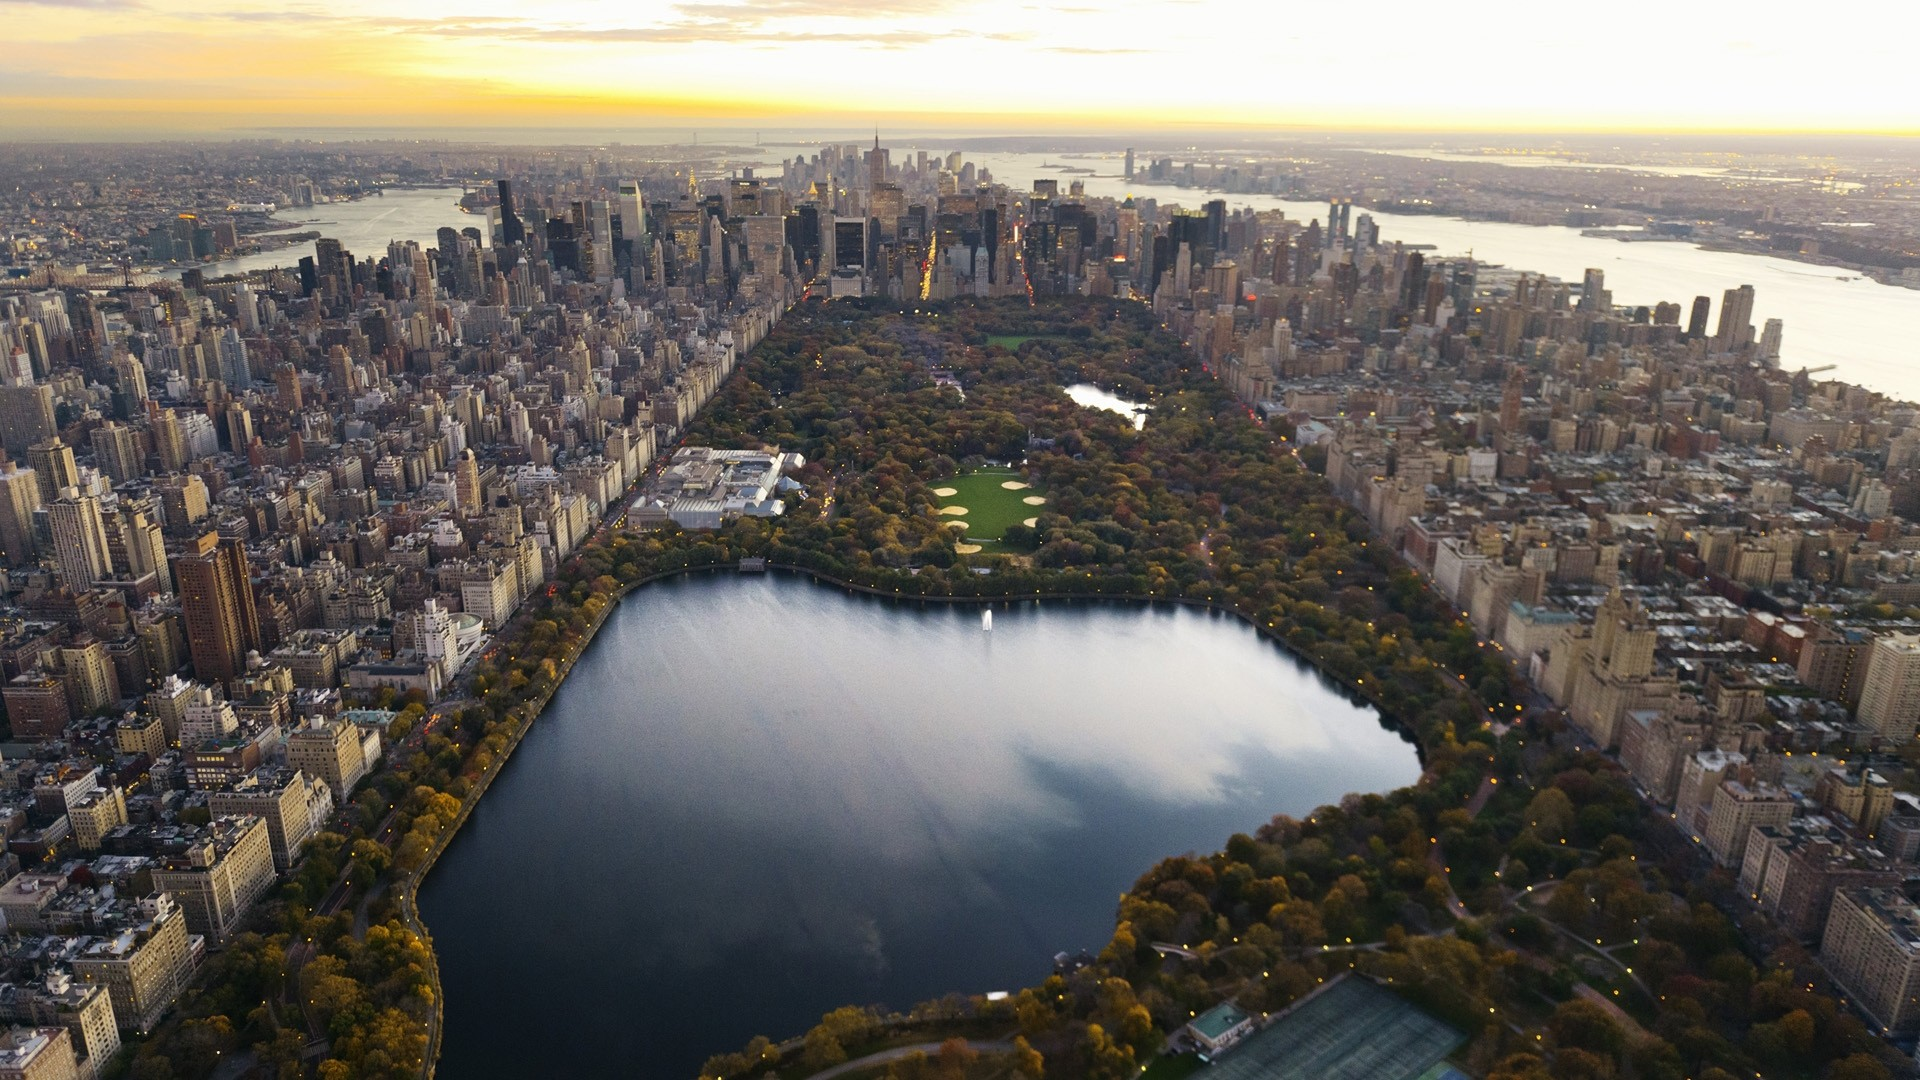 1920x1080 Preview wallpaper central park, panorama, night, new york, lake,  skyscrapers,